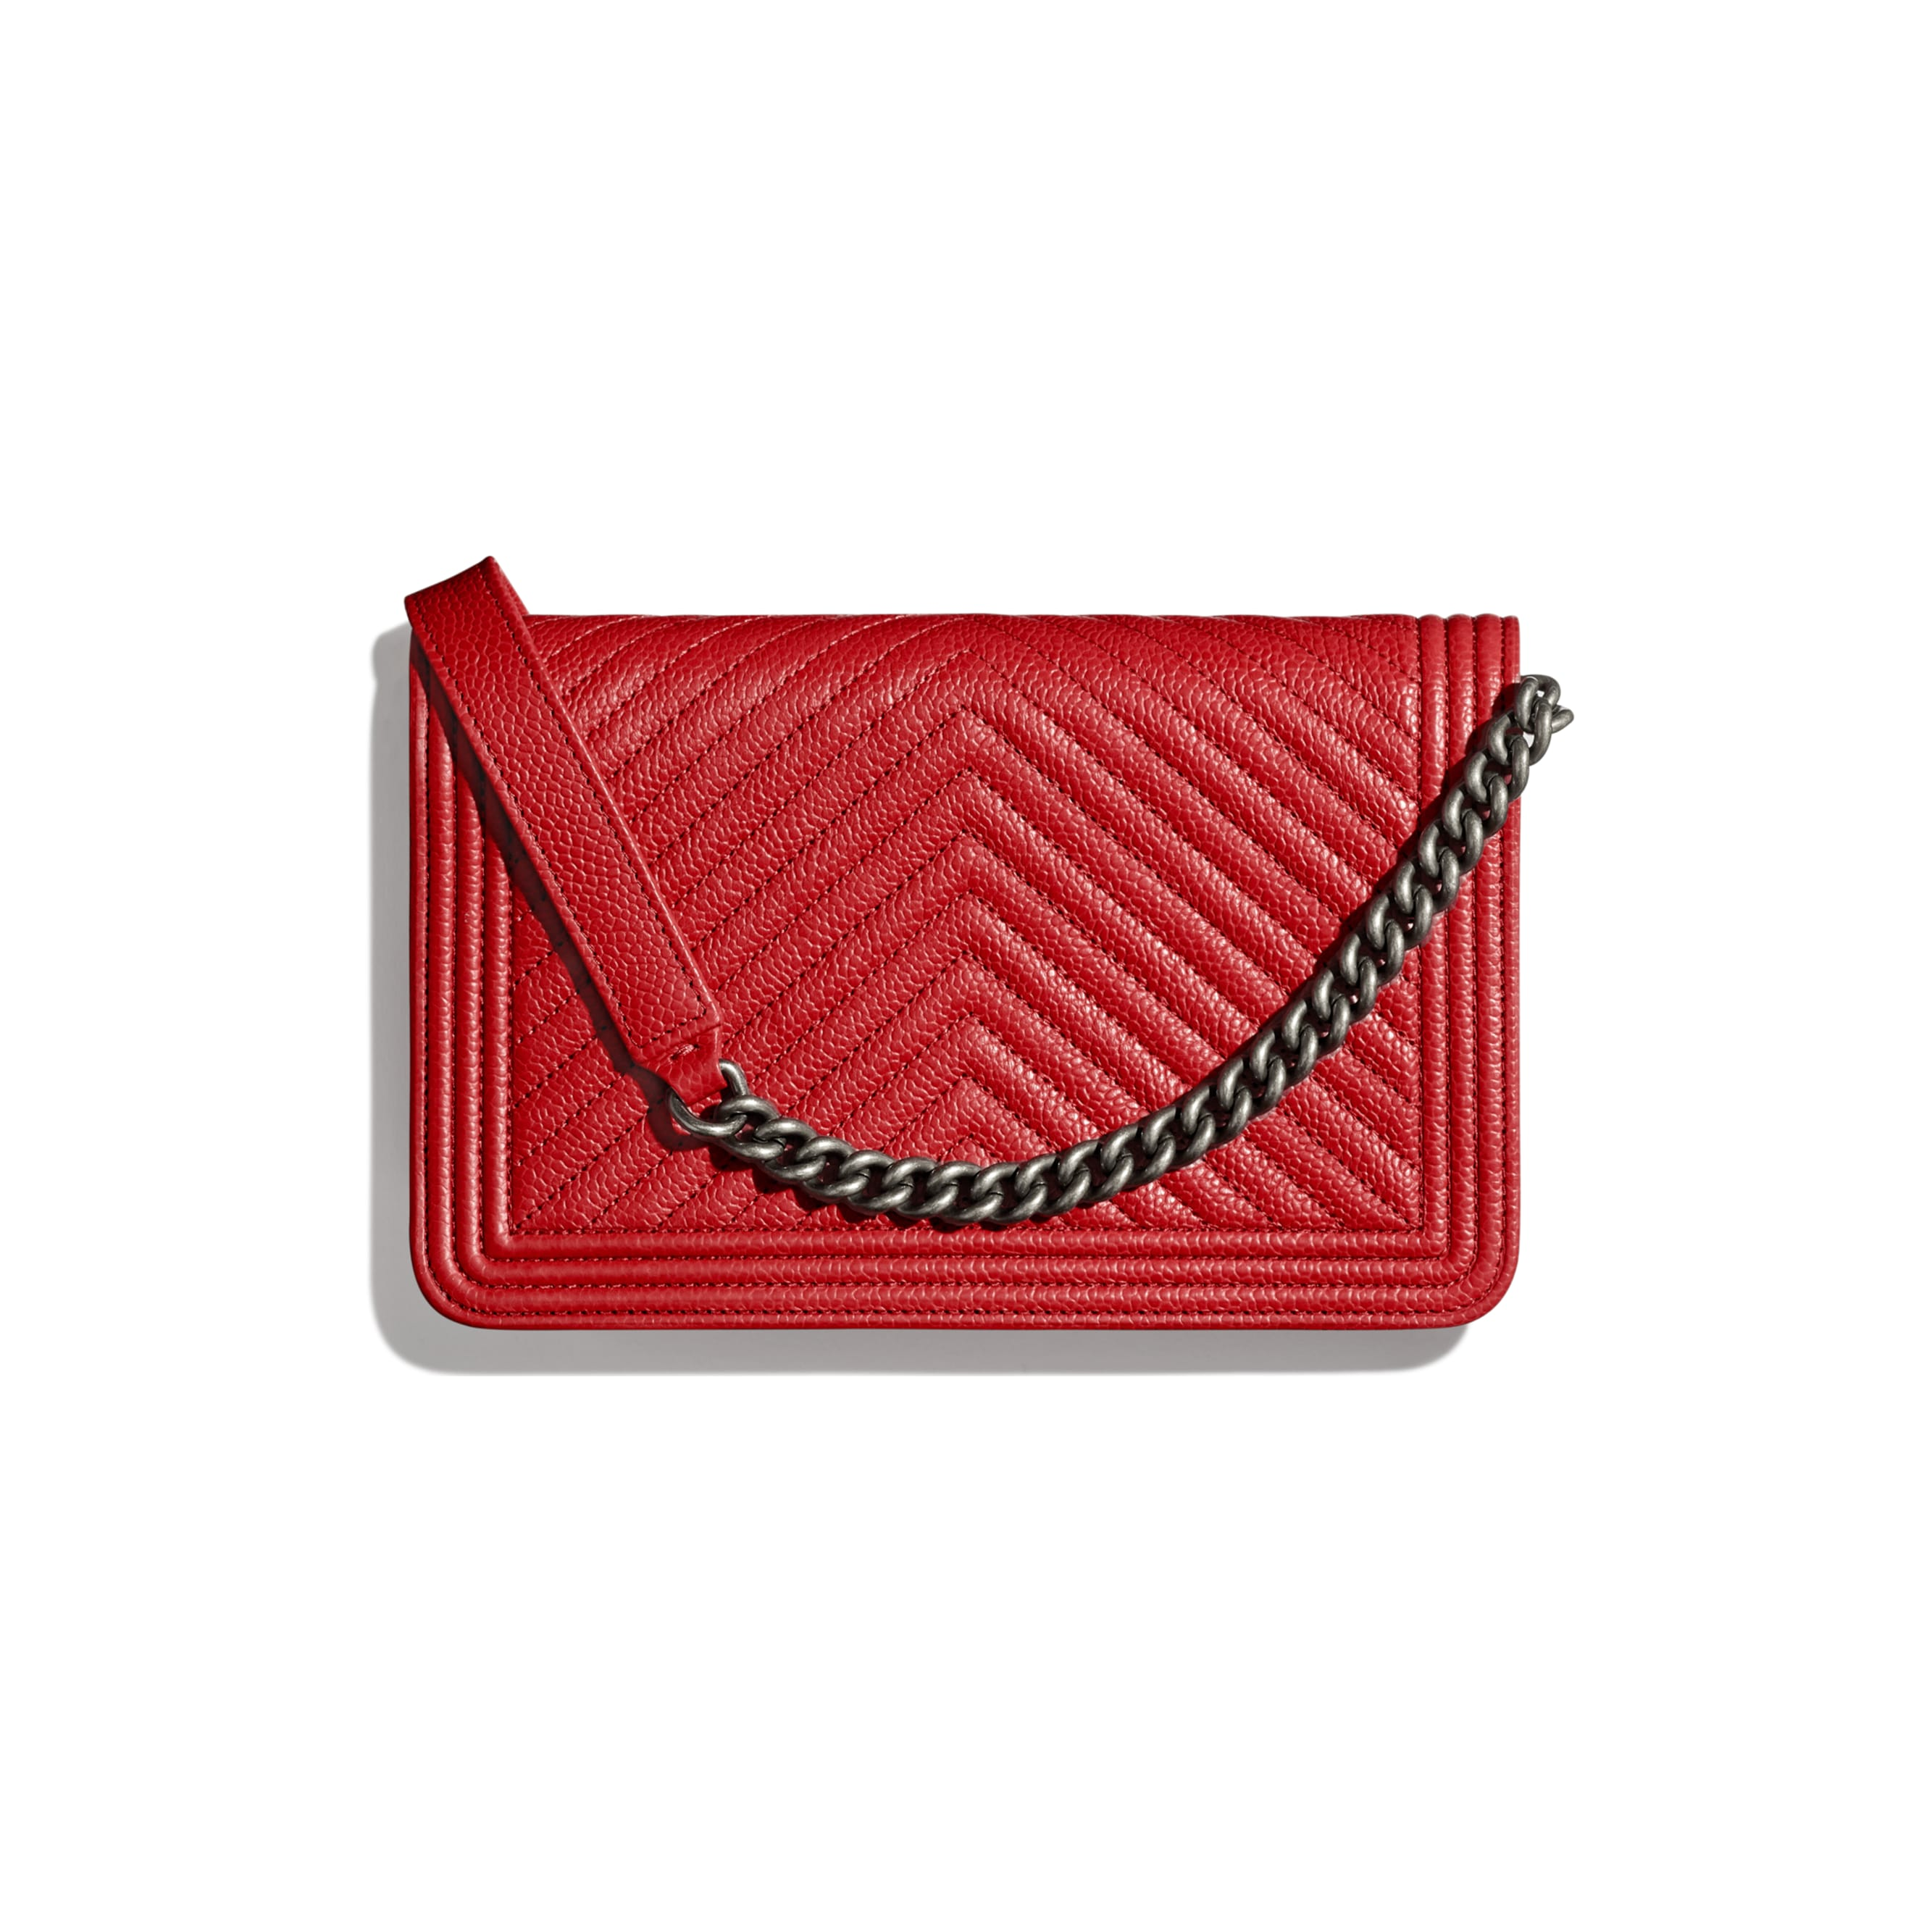 Wallet on chain BOY CHANEL - Rouge - Veau grainé  & métal finition ruthénium - CHANEL - Vue alternative - voir la version taille standard